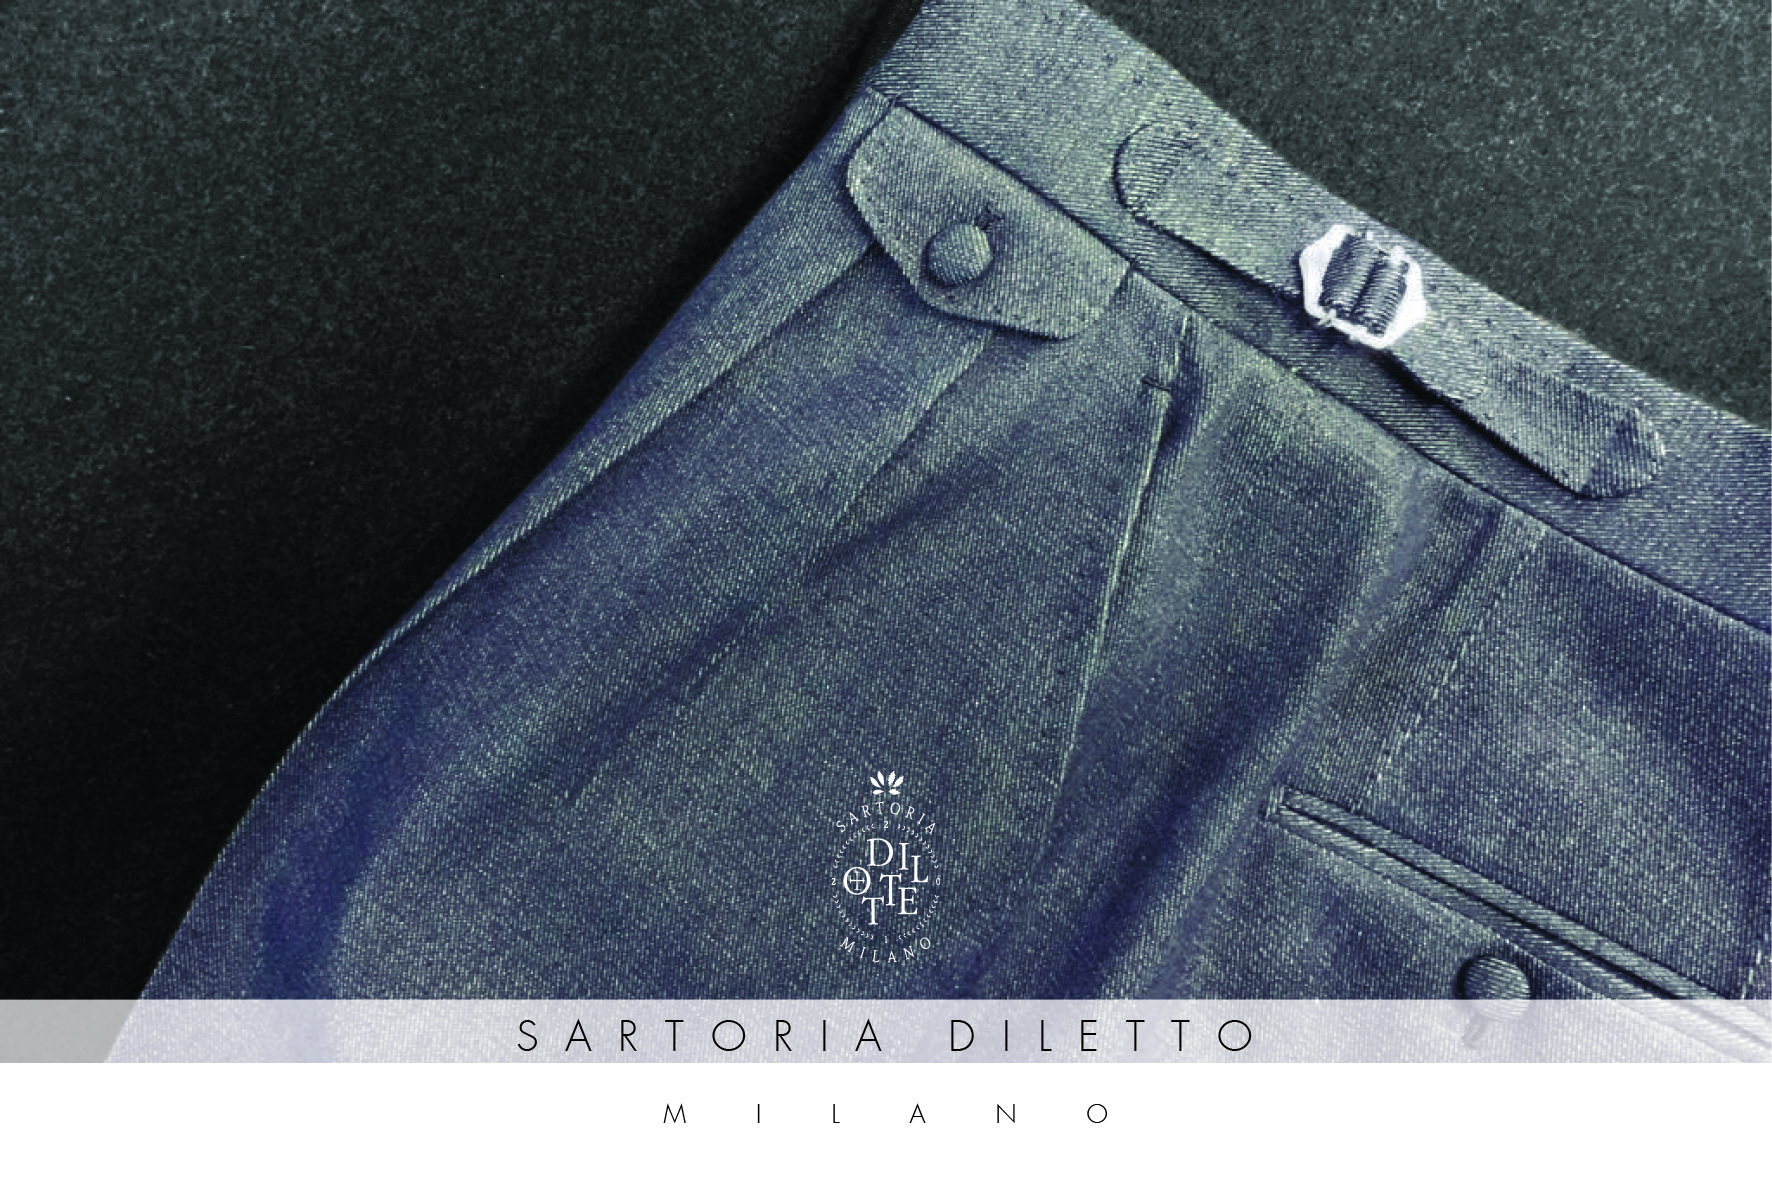 Sartoria Diletto: Trousers. Denim elegant trousers with covered buttons and size-adjuster.